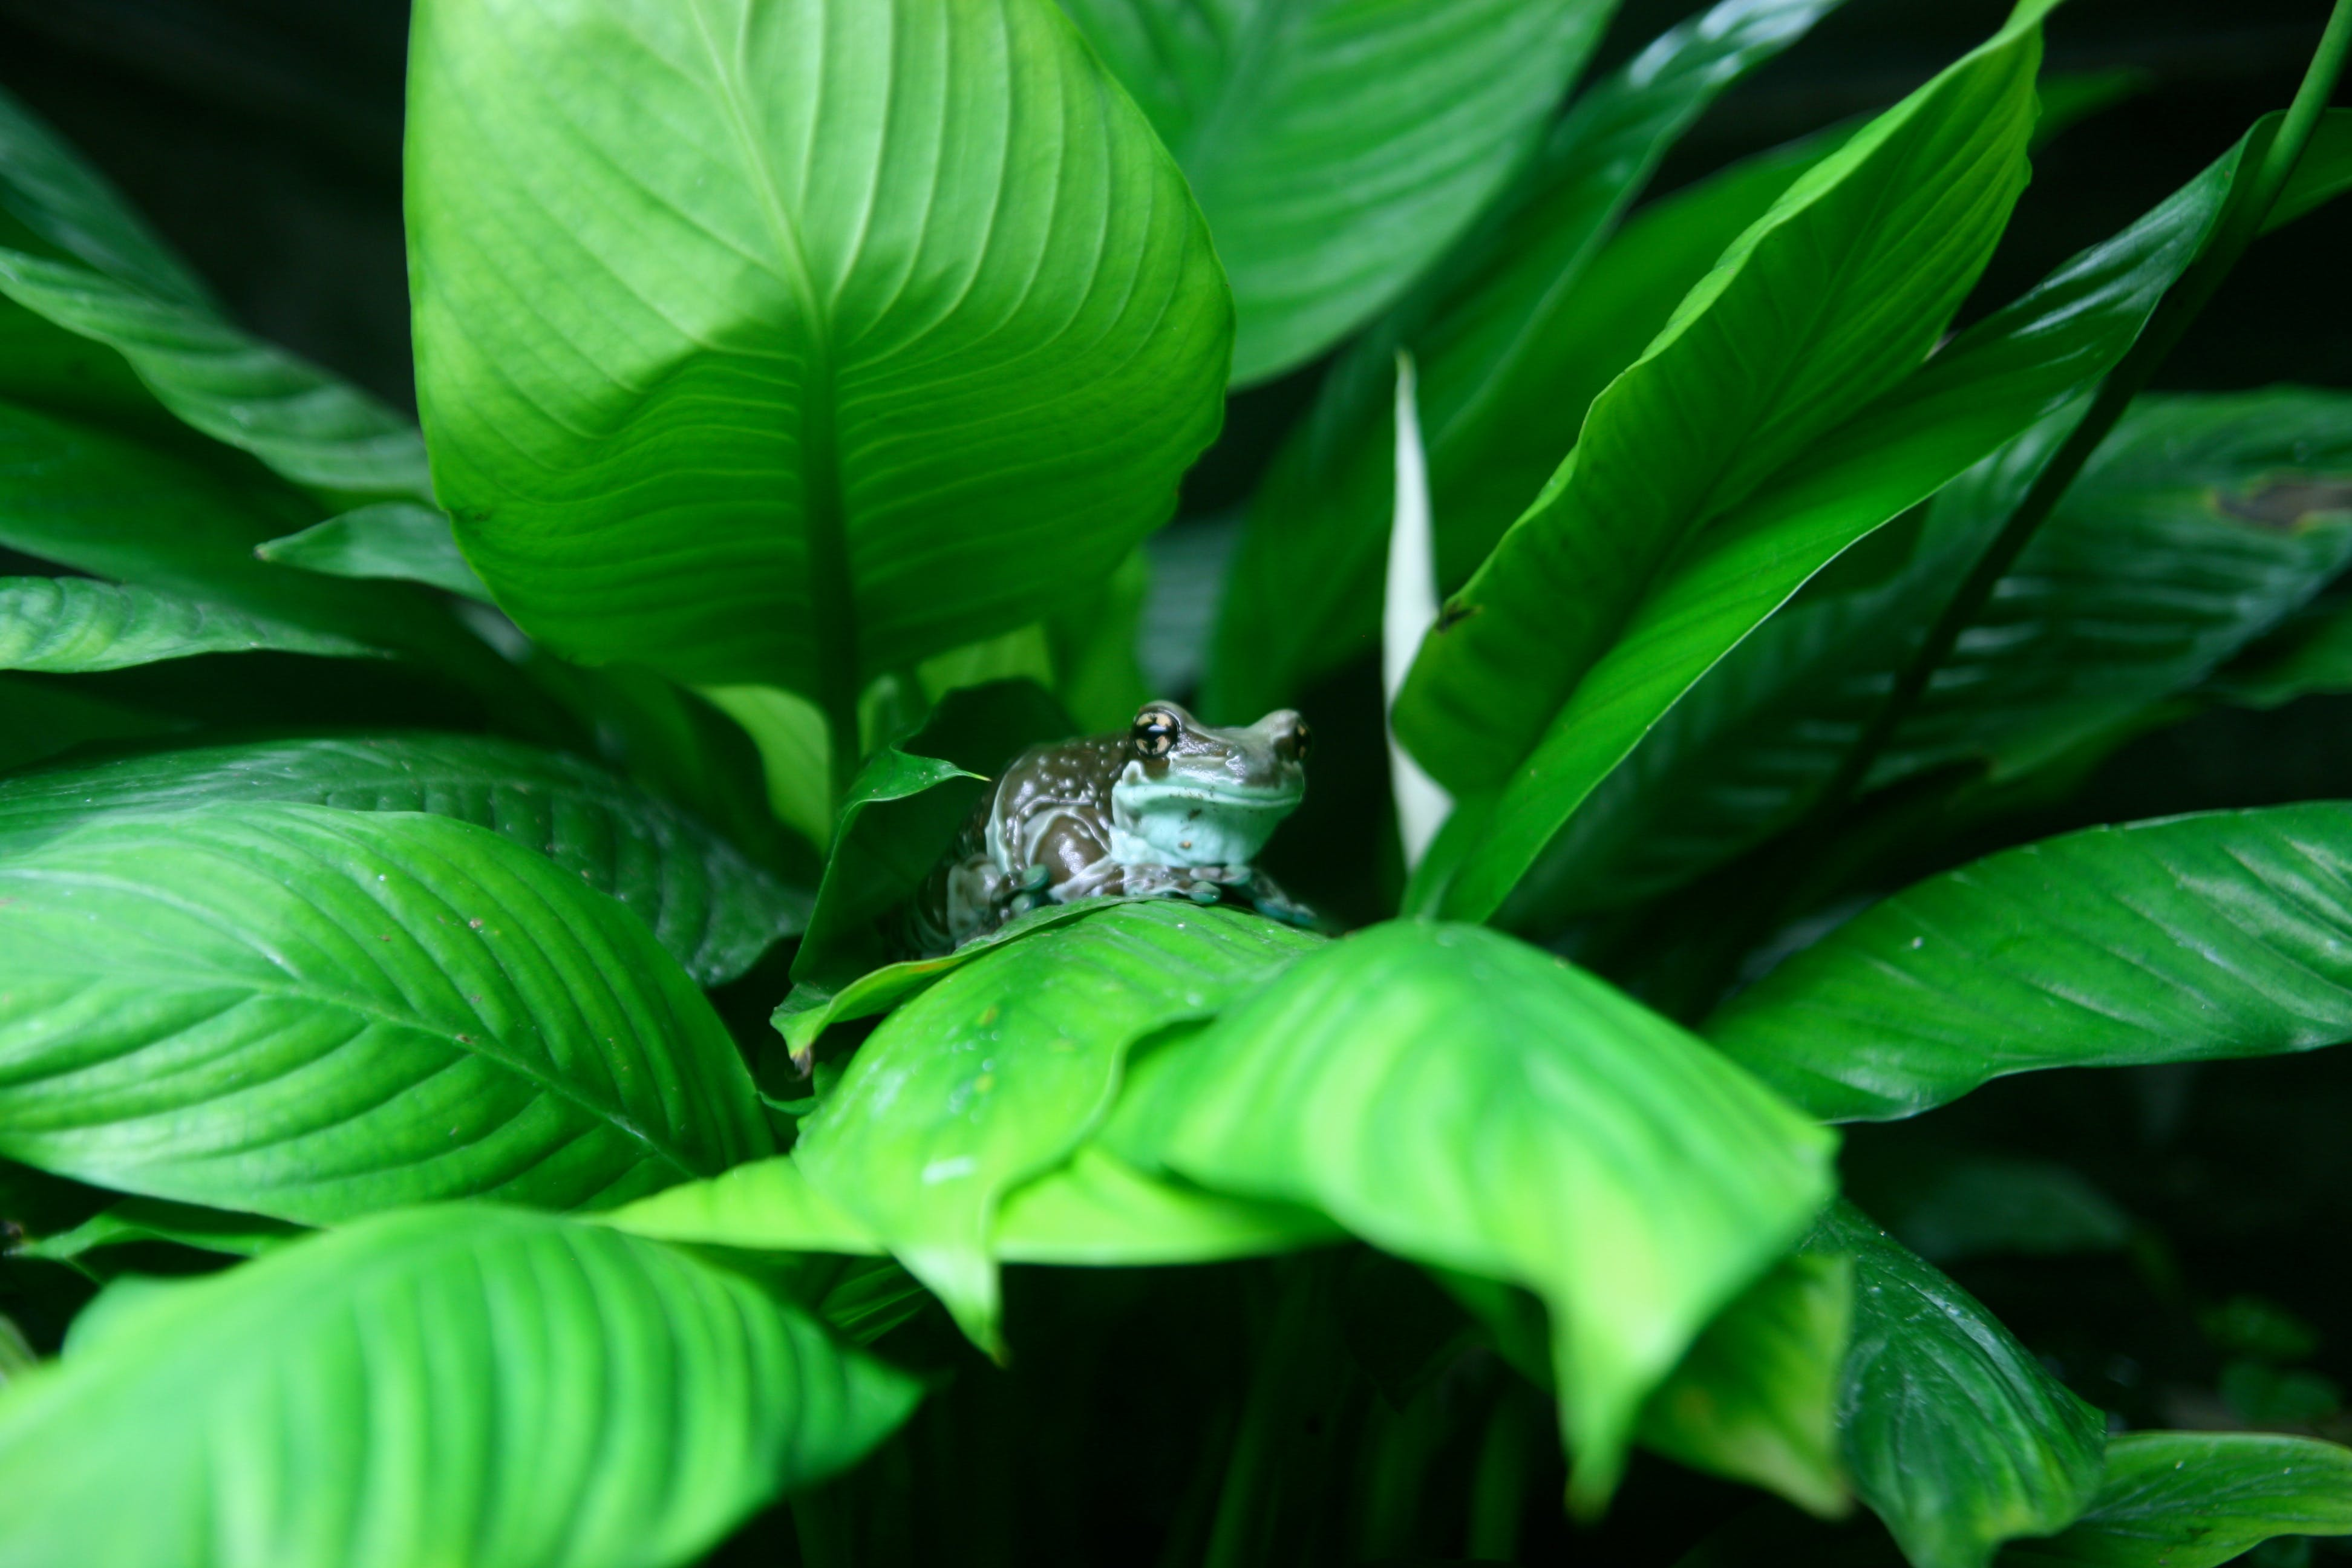 Brown and White Frog on Green Leafed Plant